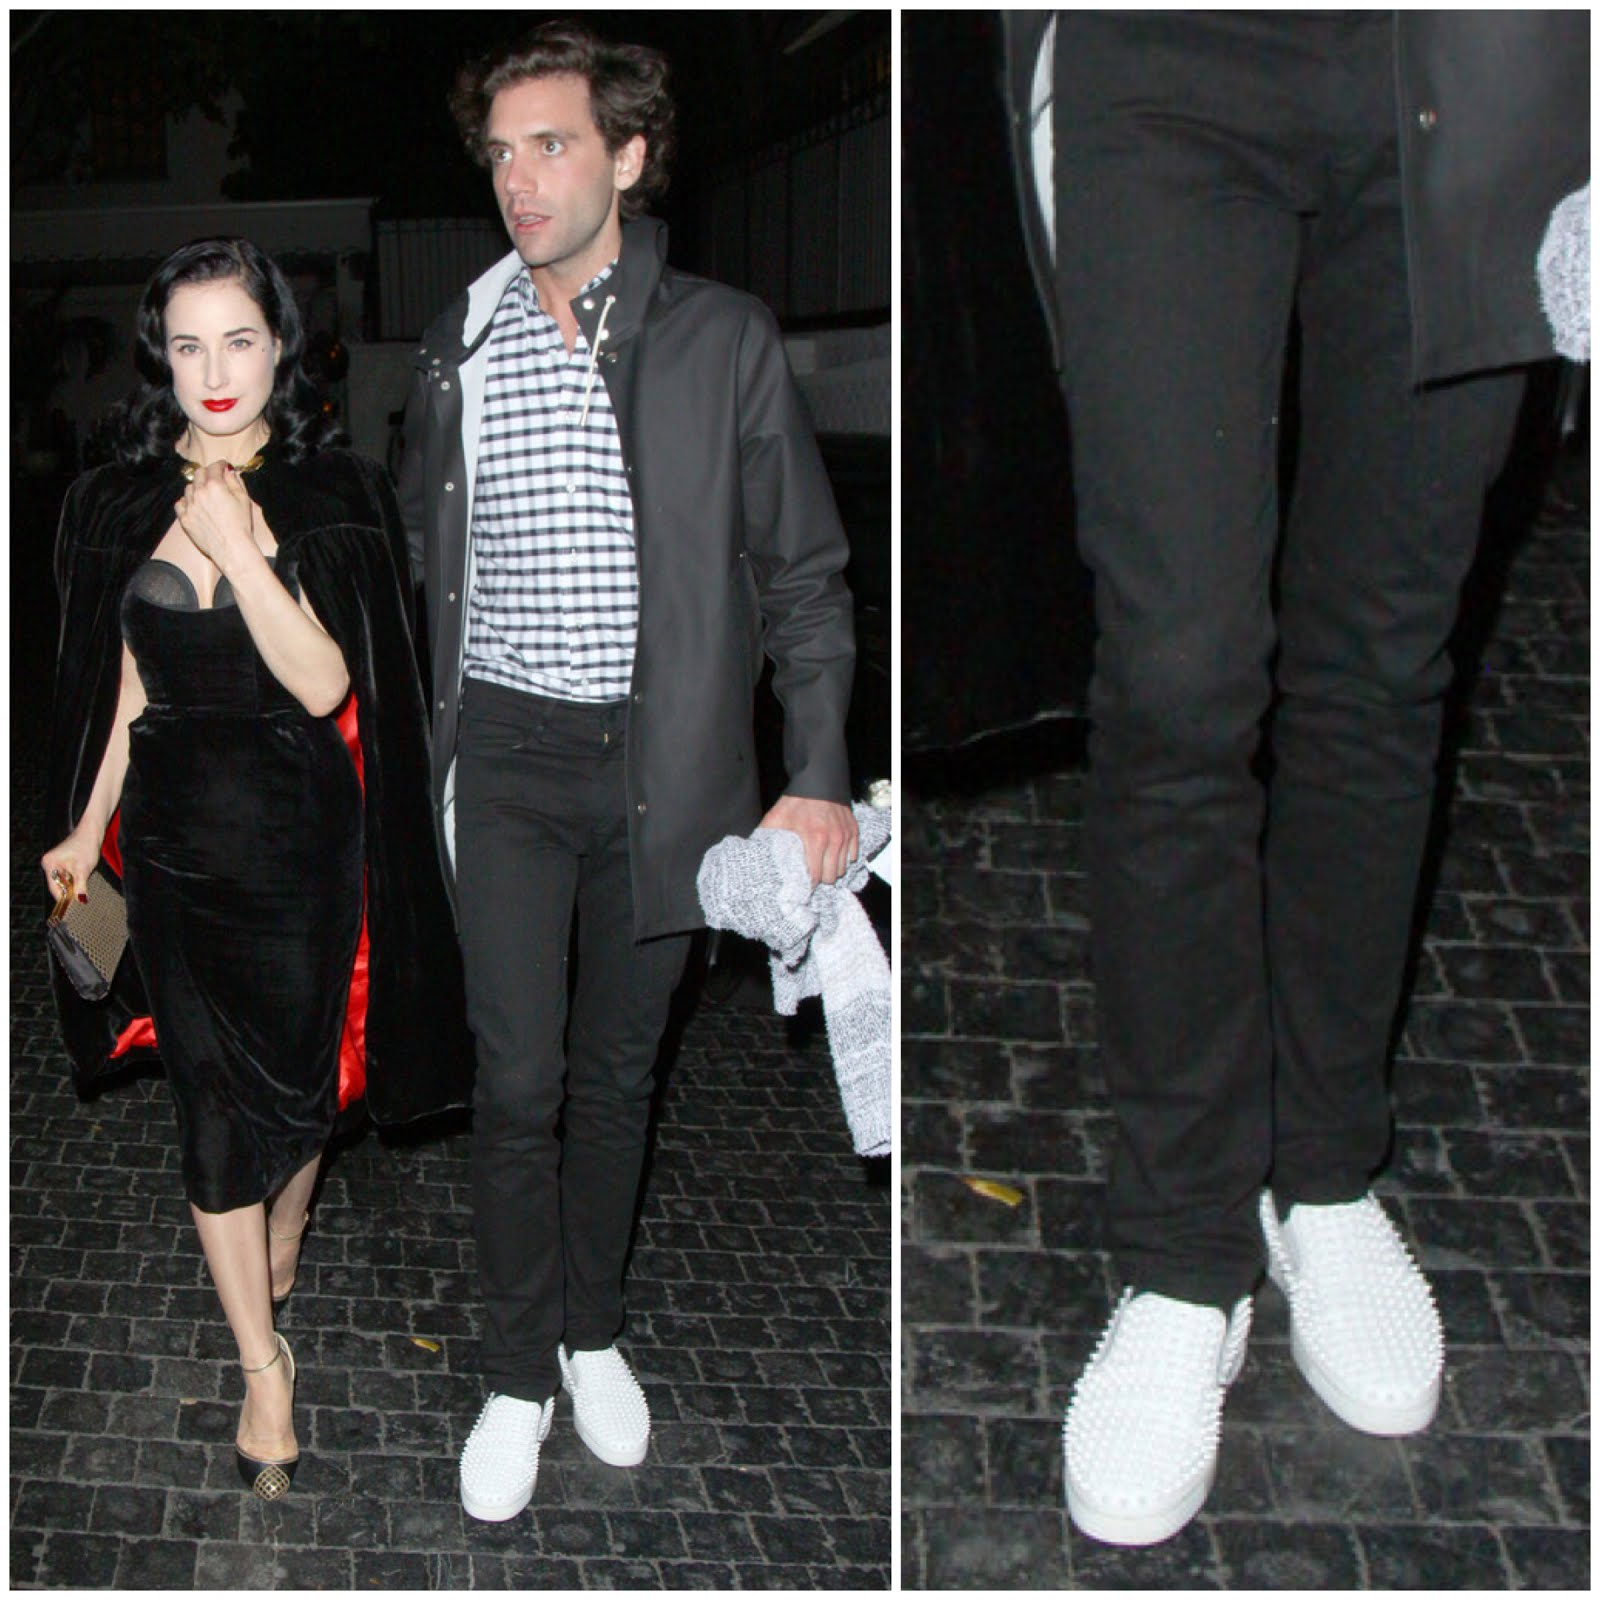 00O00 Menswear Blog Mika in Christian Louboutin mens Rollerboat with white studs - Chateau Marmont night out with Dita Von Teese March 2013